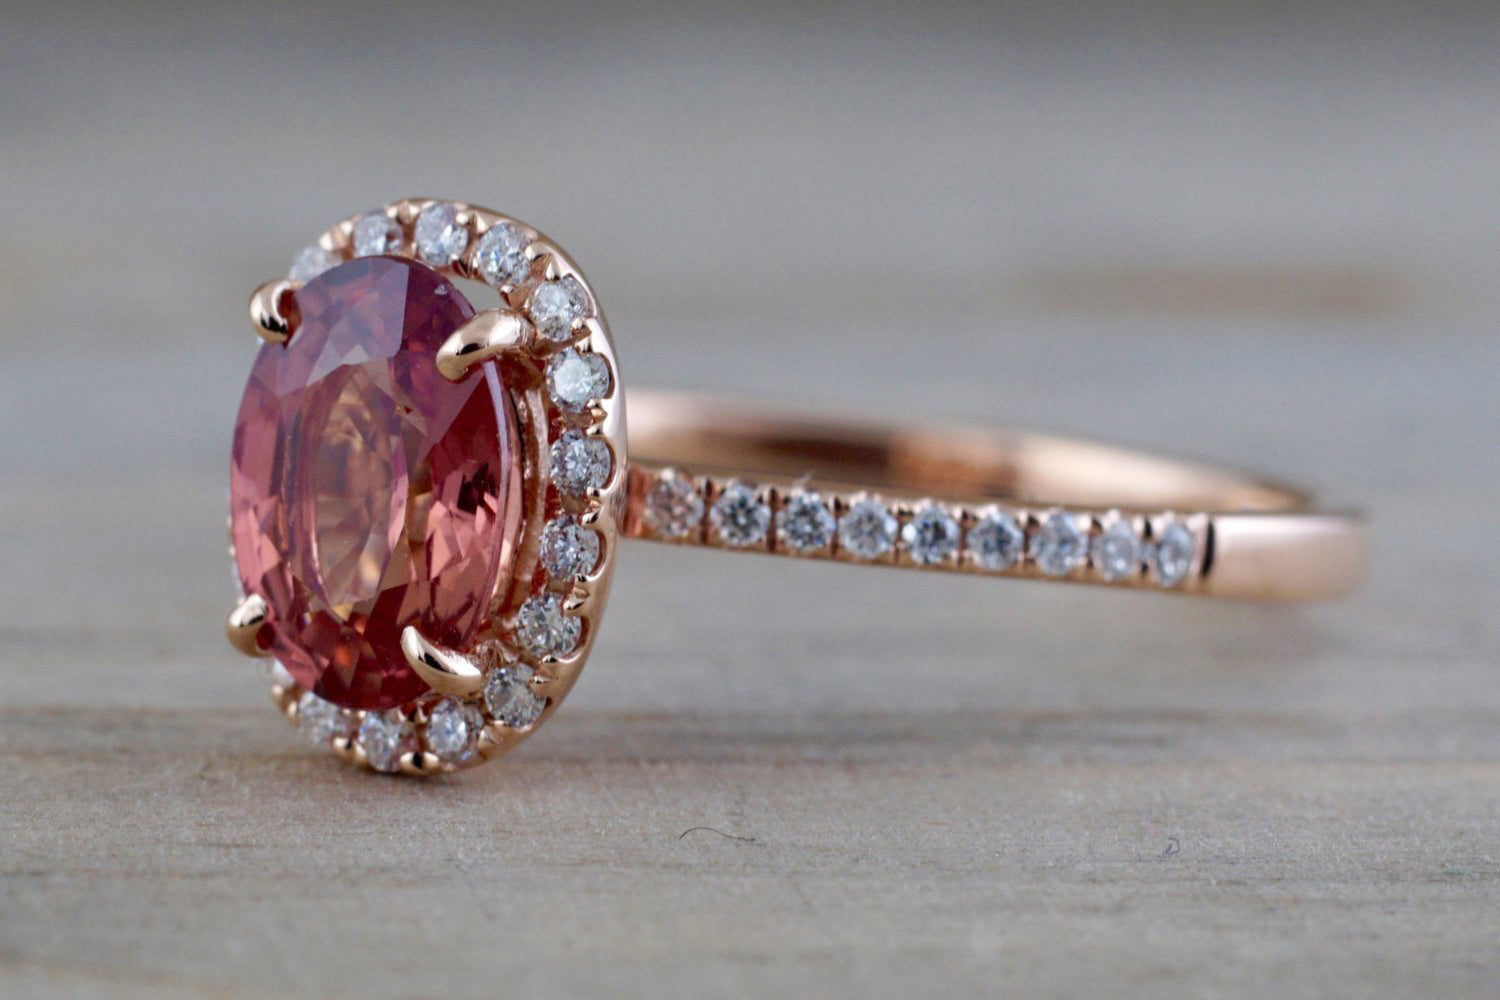 Oval peach sapphire and diamond ring - 5